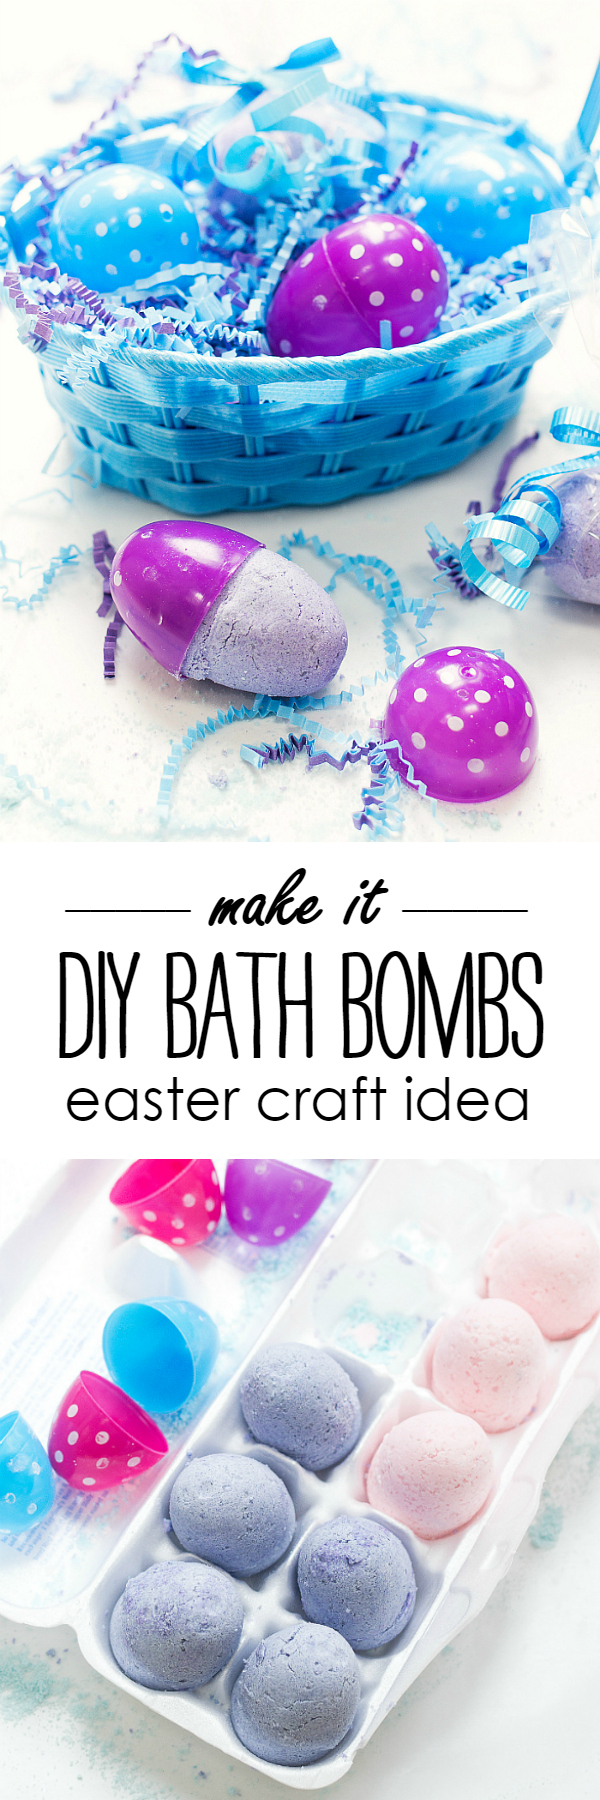 How to Make Bath Bombs - DIY Bath Bomb Recipe and Instructions @ItAllStartedWithPaint.com